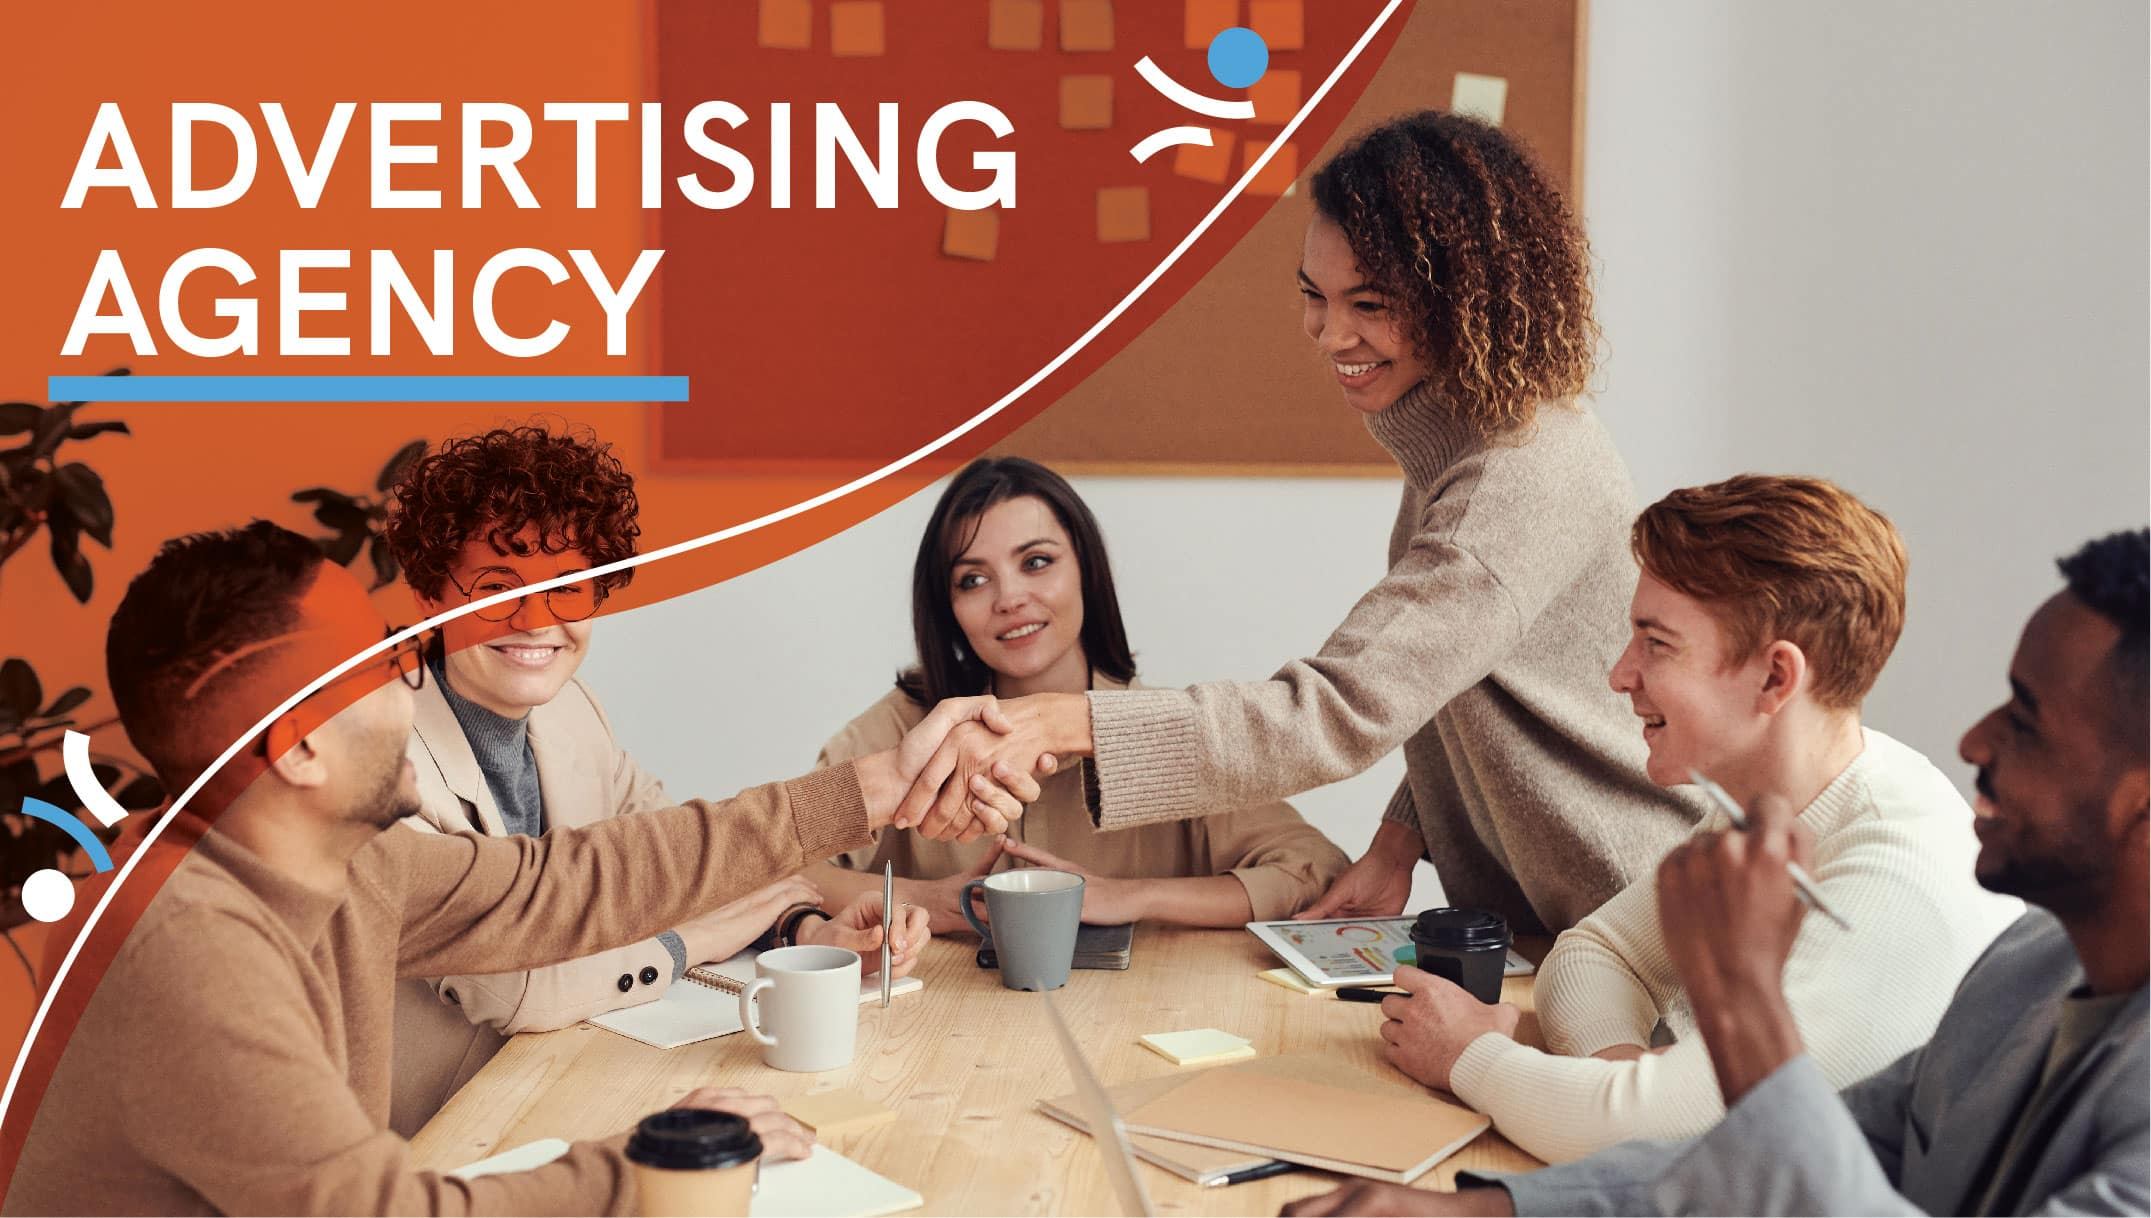 Ethic Adveritsing Agency industry vertical image for advertising agencies advertising